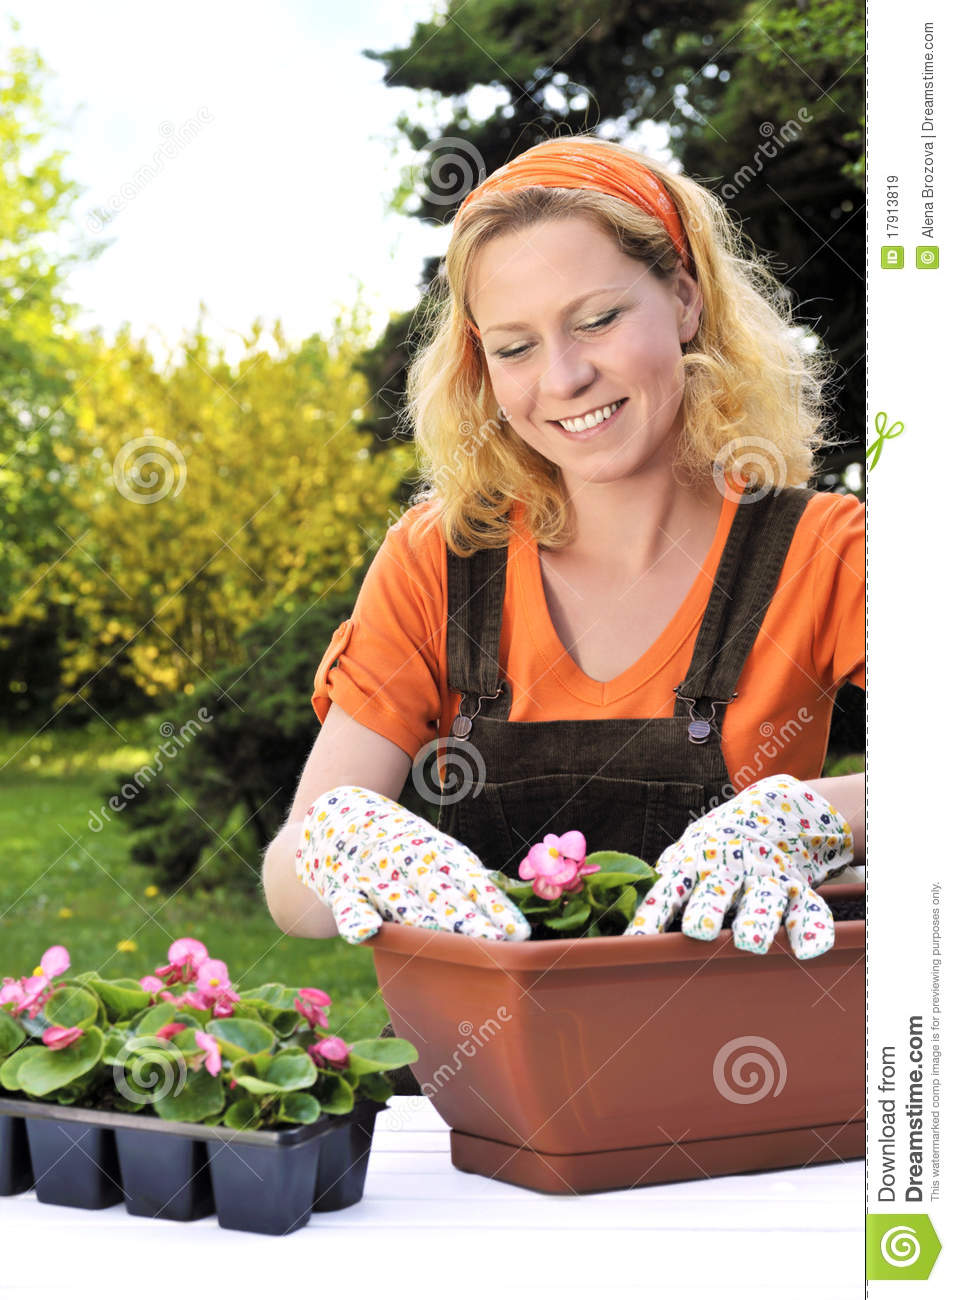 Young Woman Gardening Planting Flowers Royalty Free